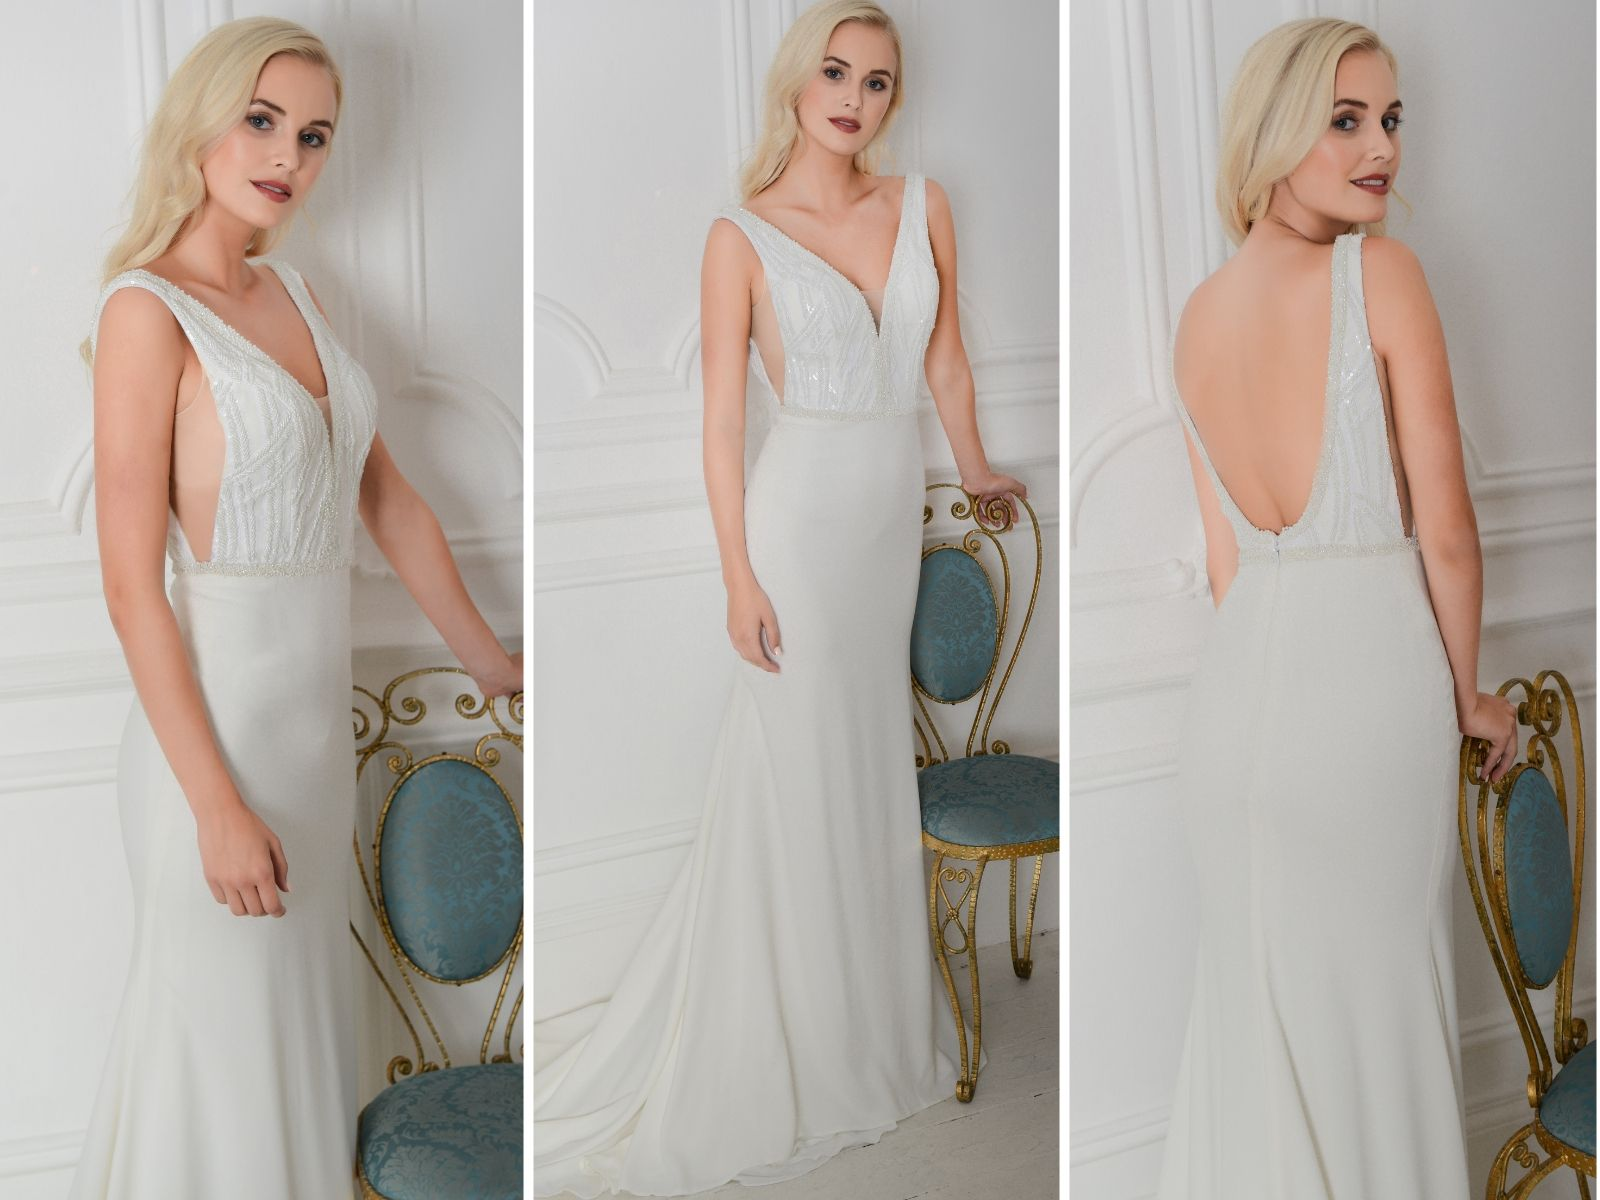 Backless bridal gown by Loulou Bride